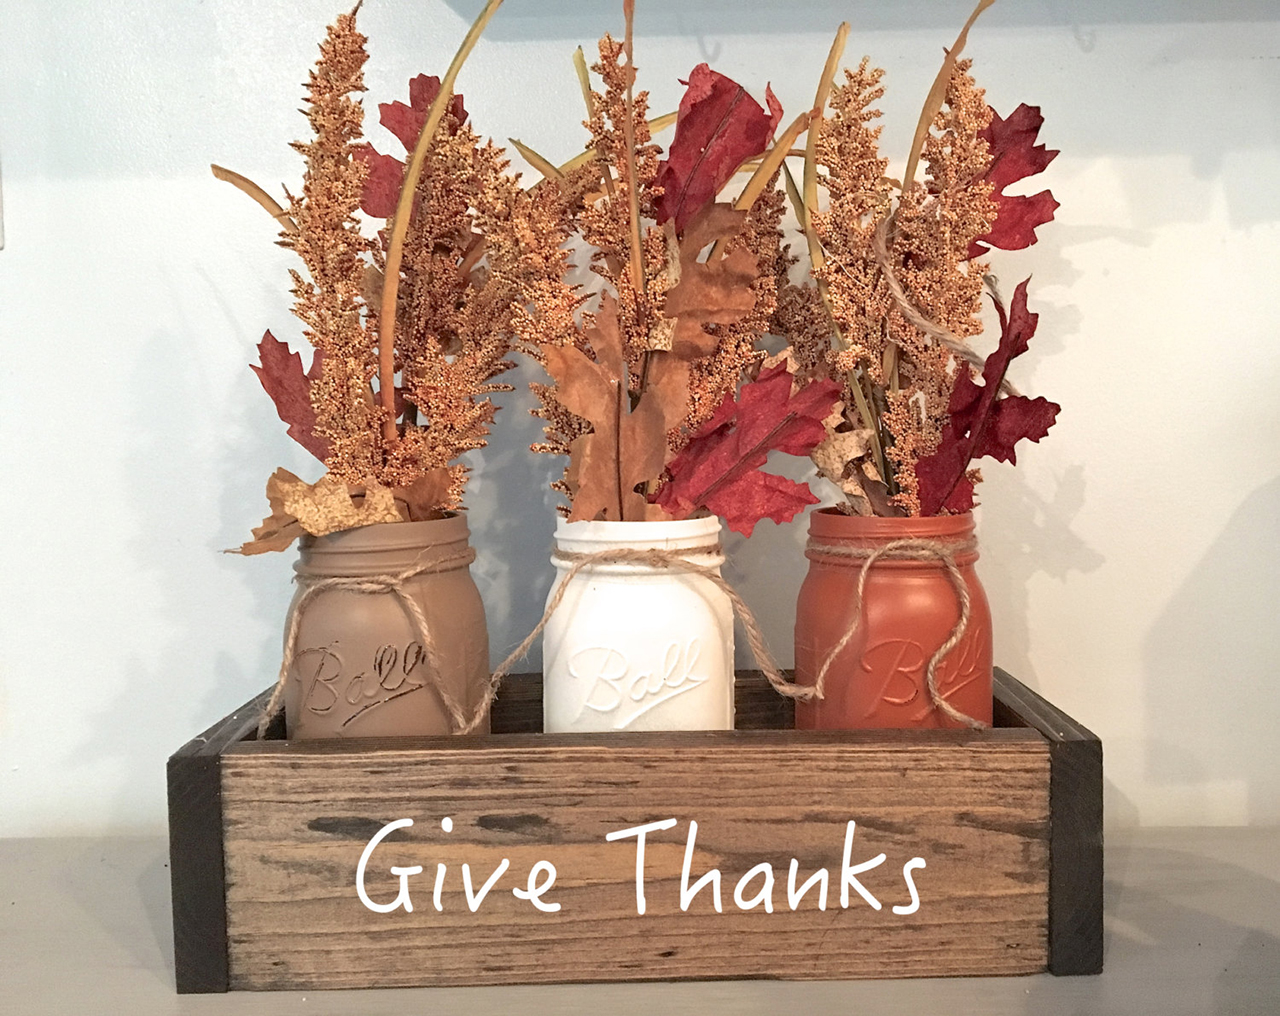 Painted Mason Jar Crate with Hand-tied Fall Foliage Bouquets